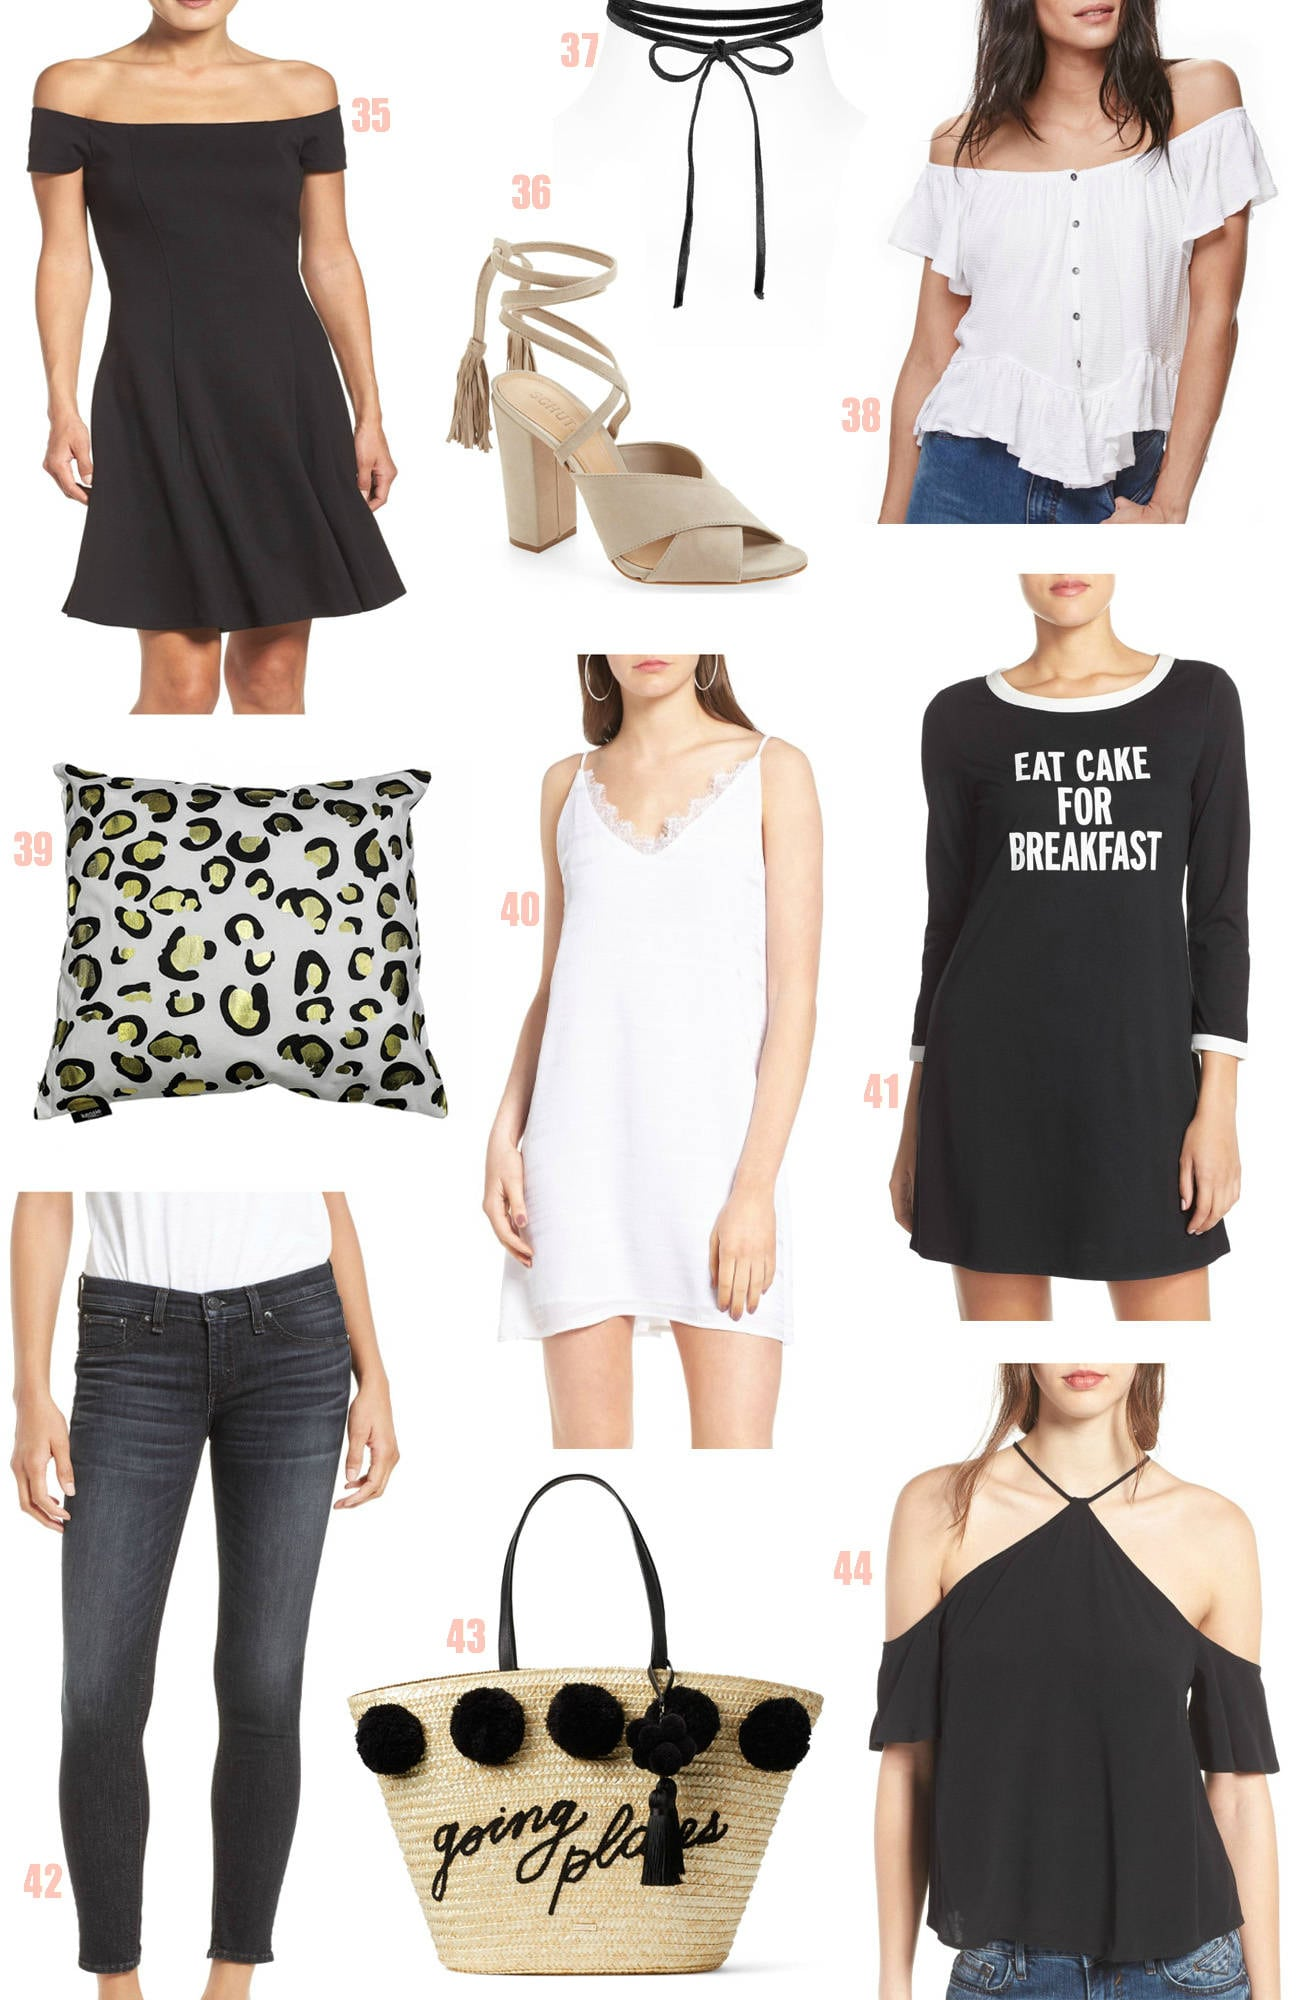 Nordstrom half yearly sale |Mash Elle beauty blogger | bell sleeves | jewelry | flats | lace shirt | swimwear off the shoulder dress nude heels choker cake dress woven purse